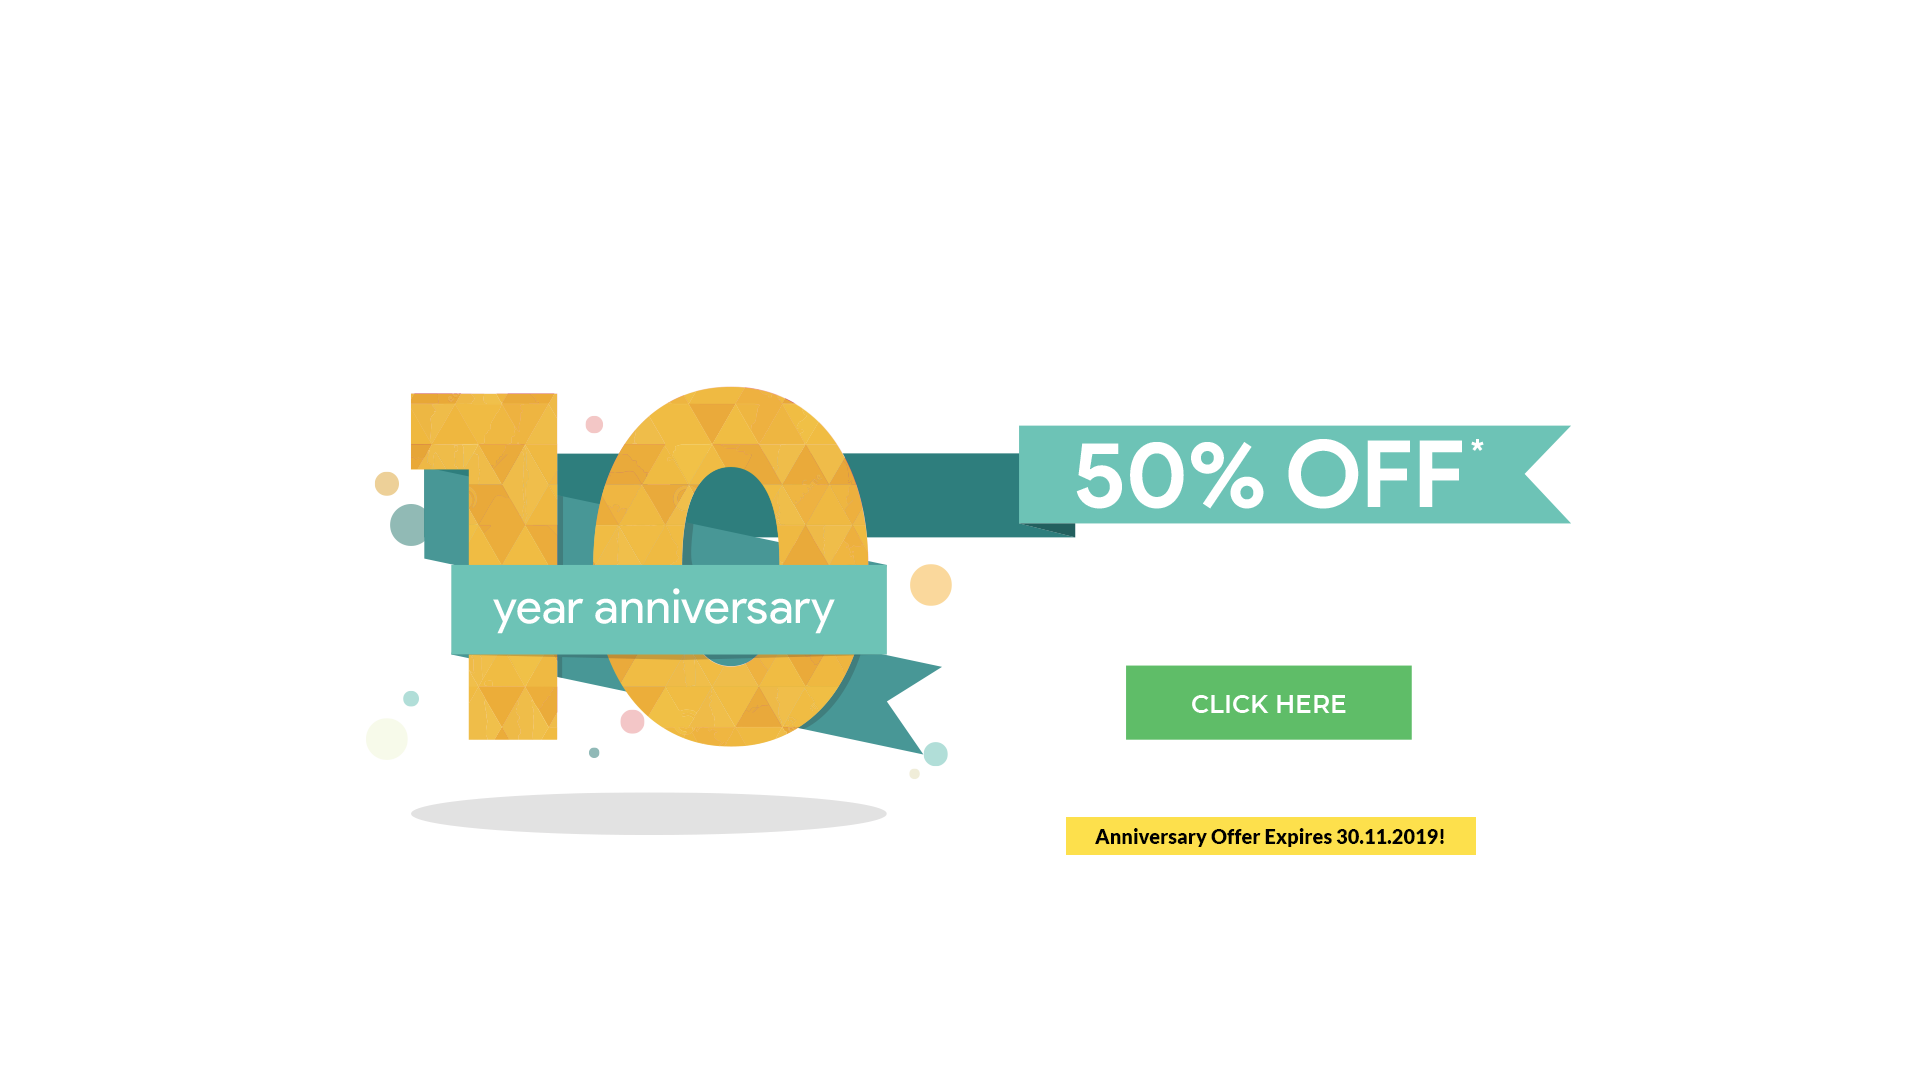 10 year Anniversary Offer